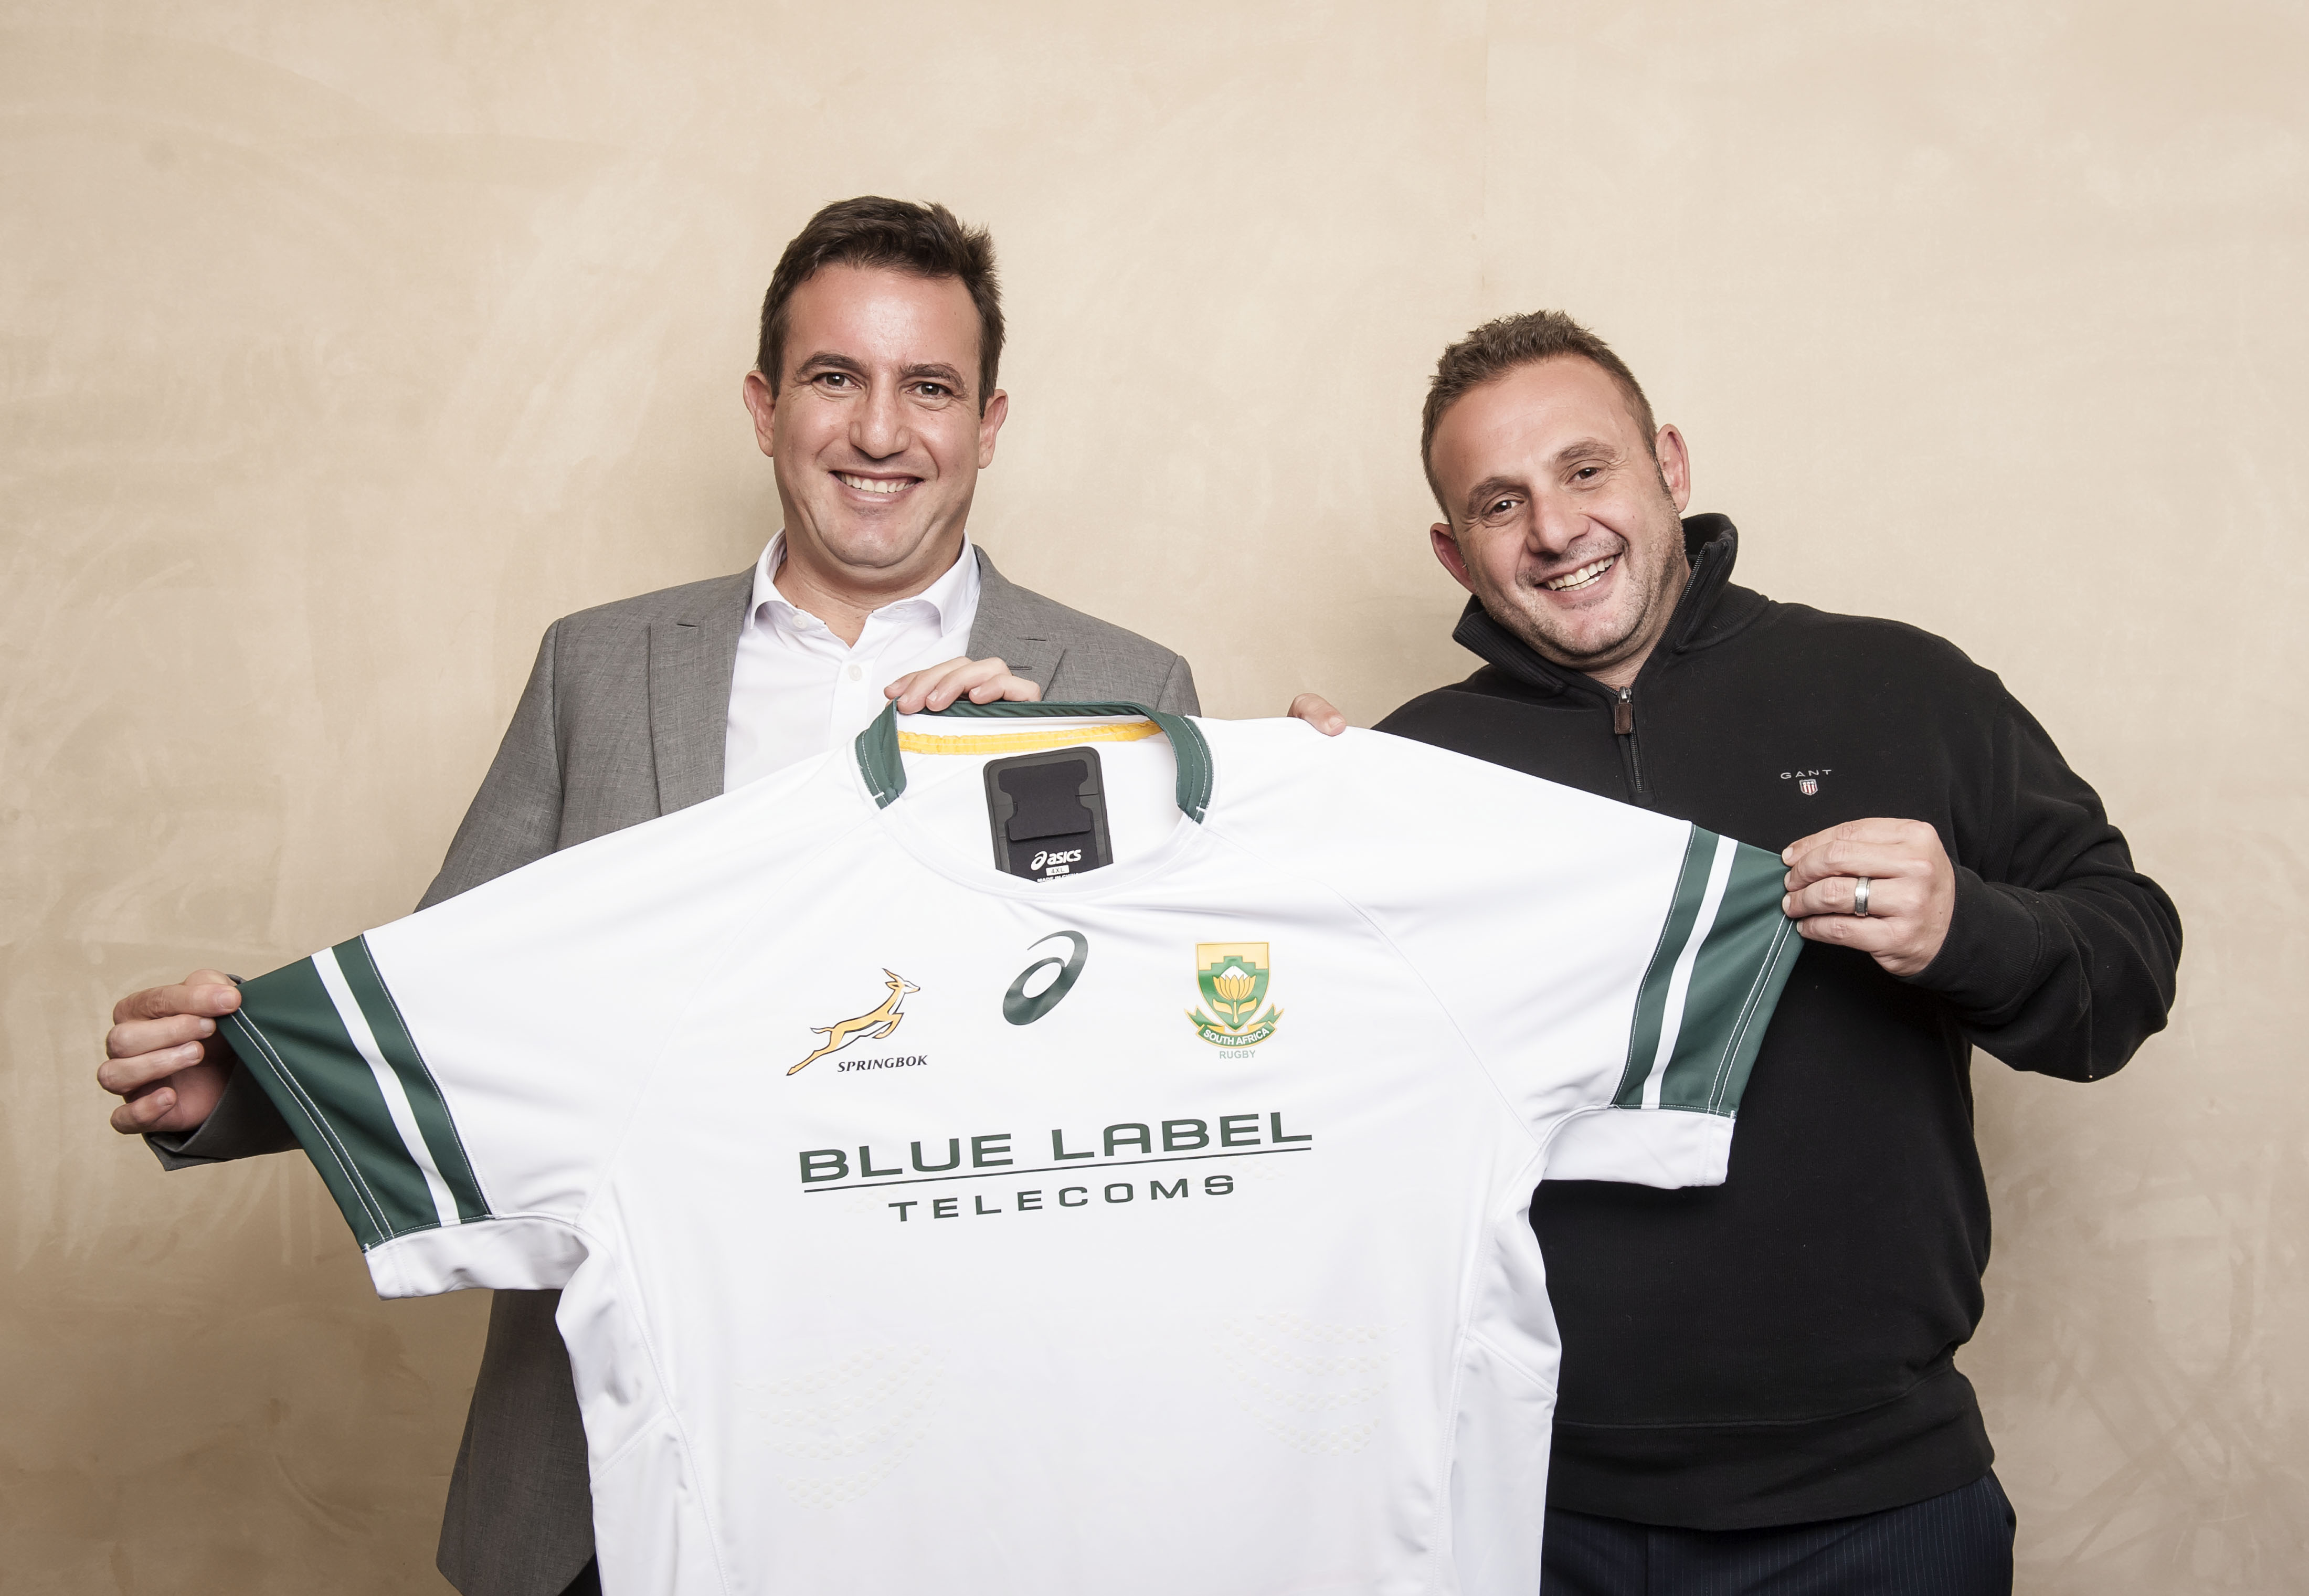 Blue Label Telecoms partners with SA Rugby